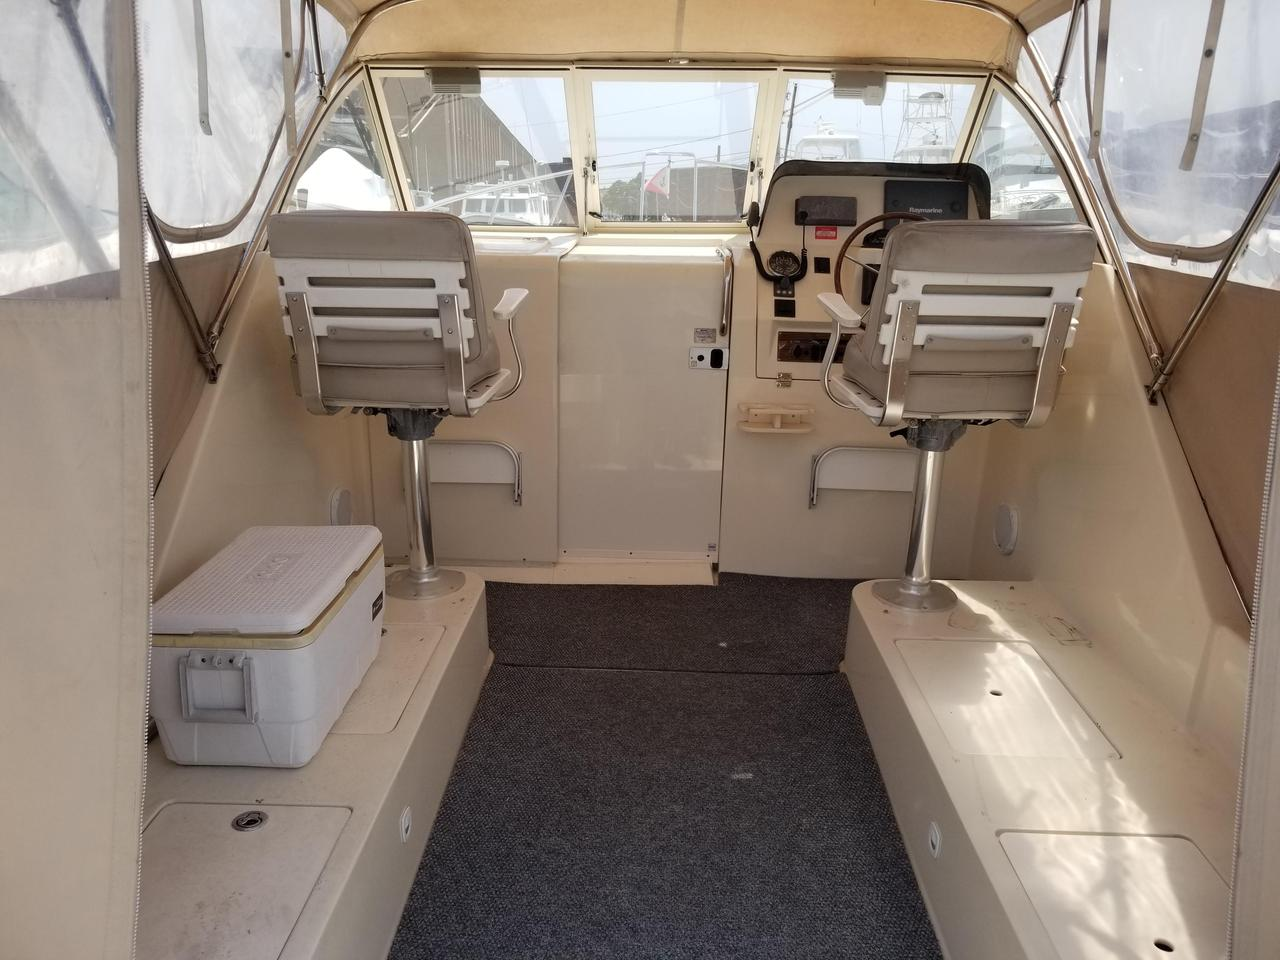 2005 Used Mainship 30 Pilot II Cruiser Boat For Sale - $62,900 - New